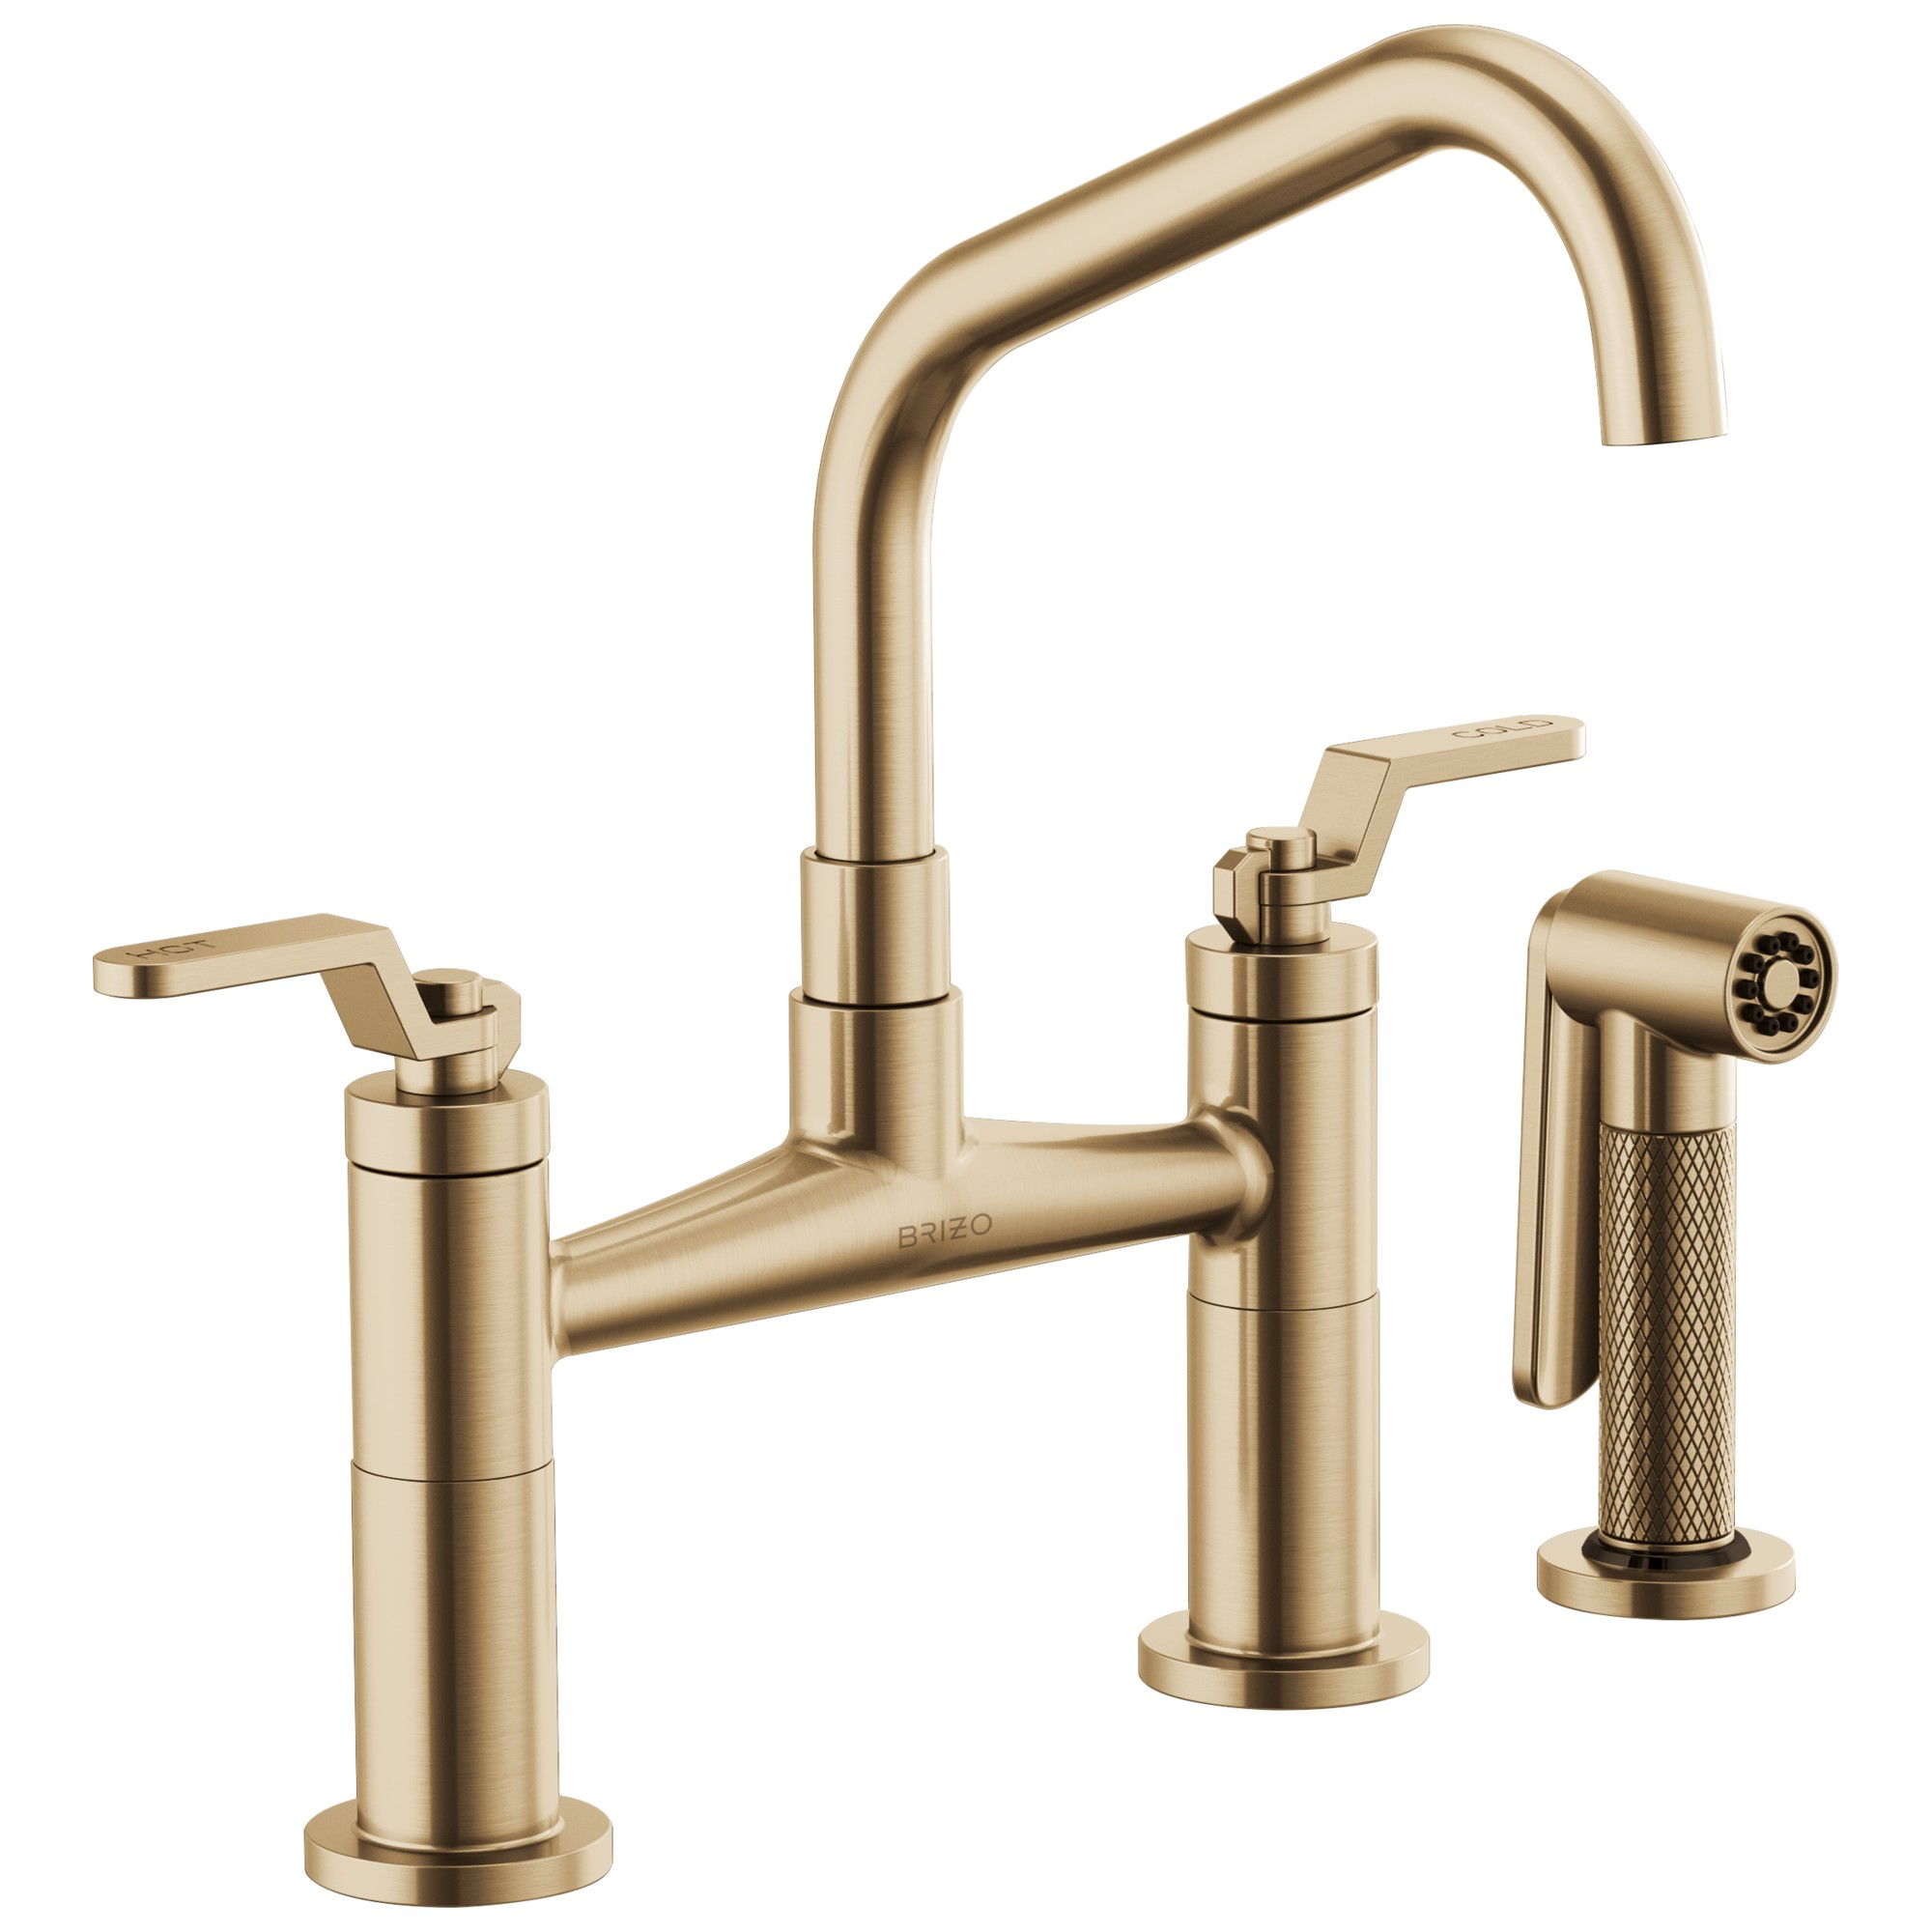 Brizo 62564LF-GL Litze Bridge Faucet with Angled Spout and Industrial Handle - Luxe Gold